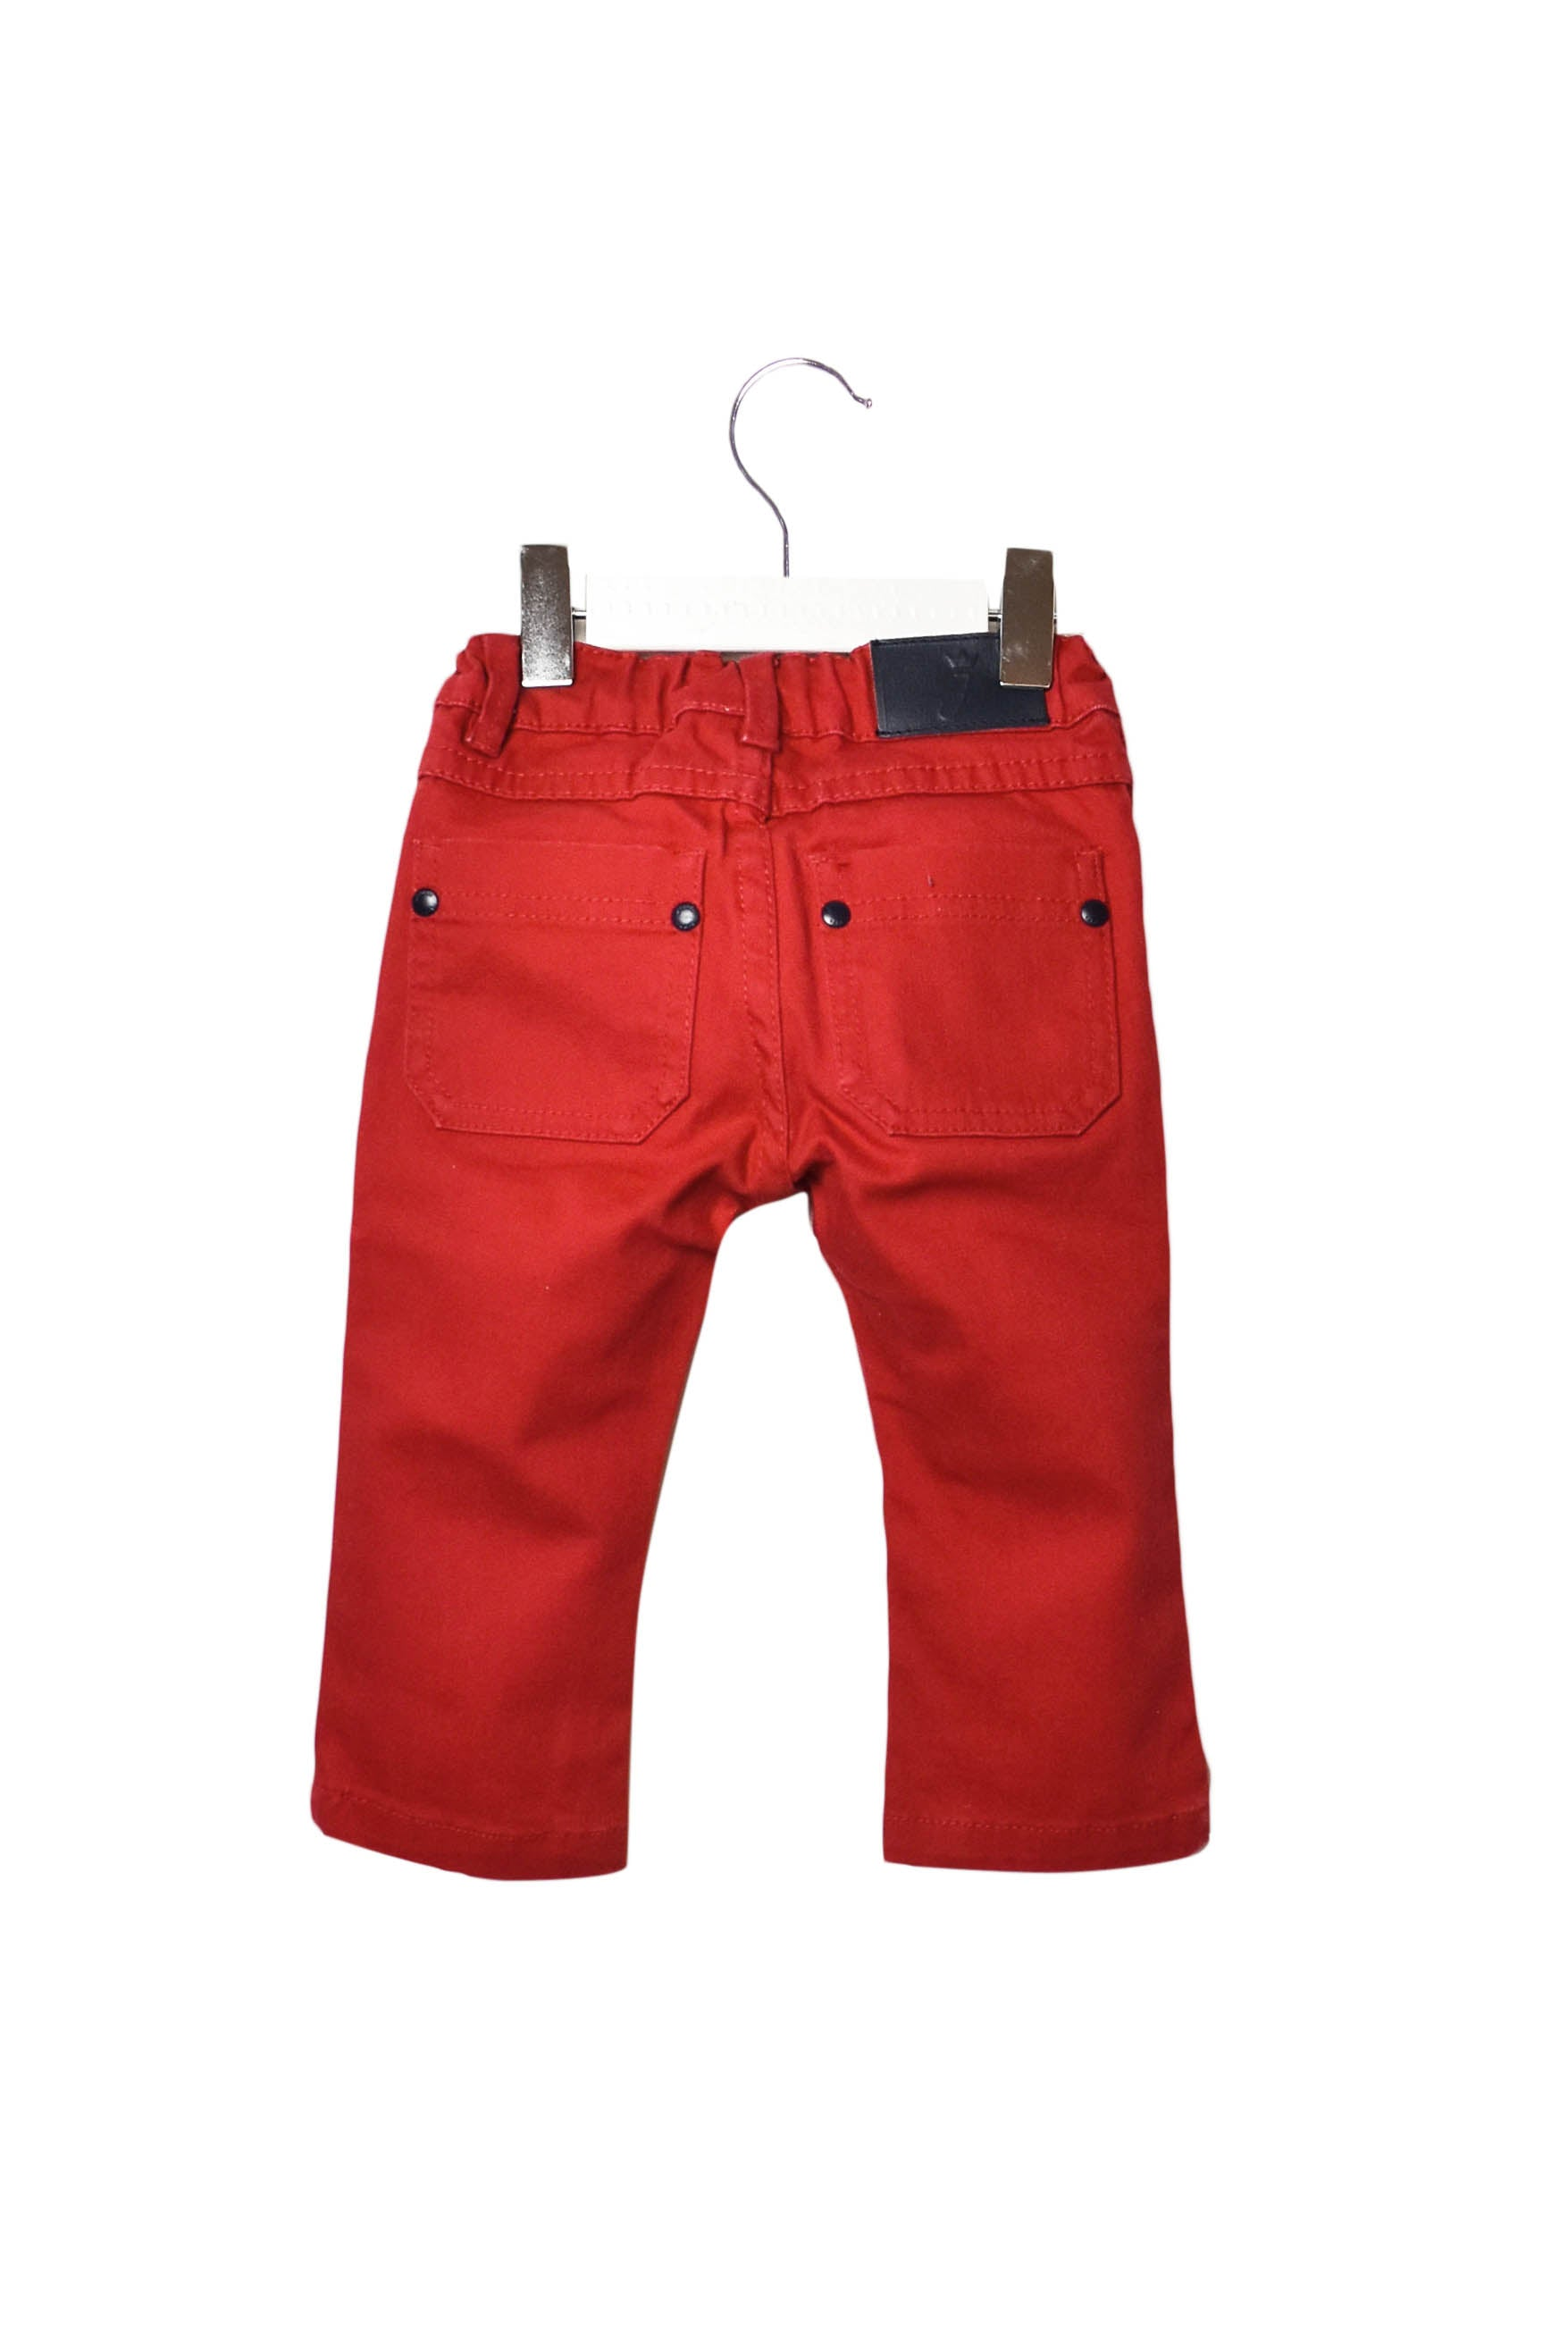 10008601 Jacadi Baby~Jeans 12M at Retykle